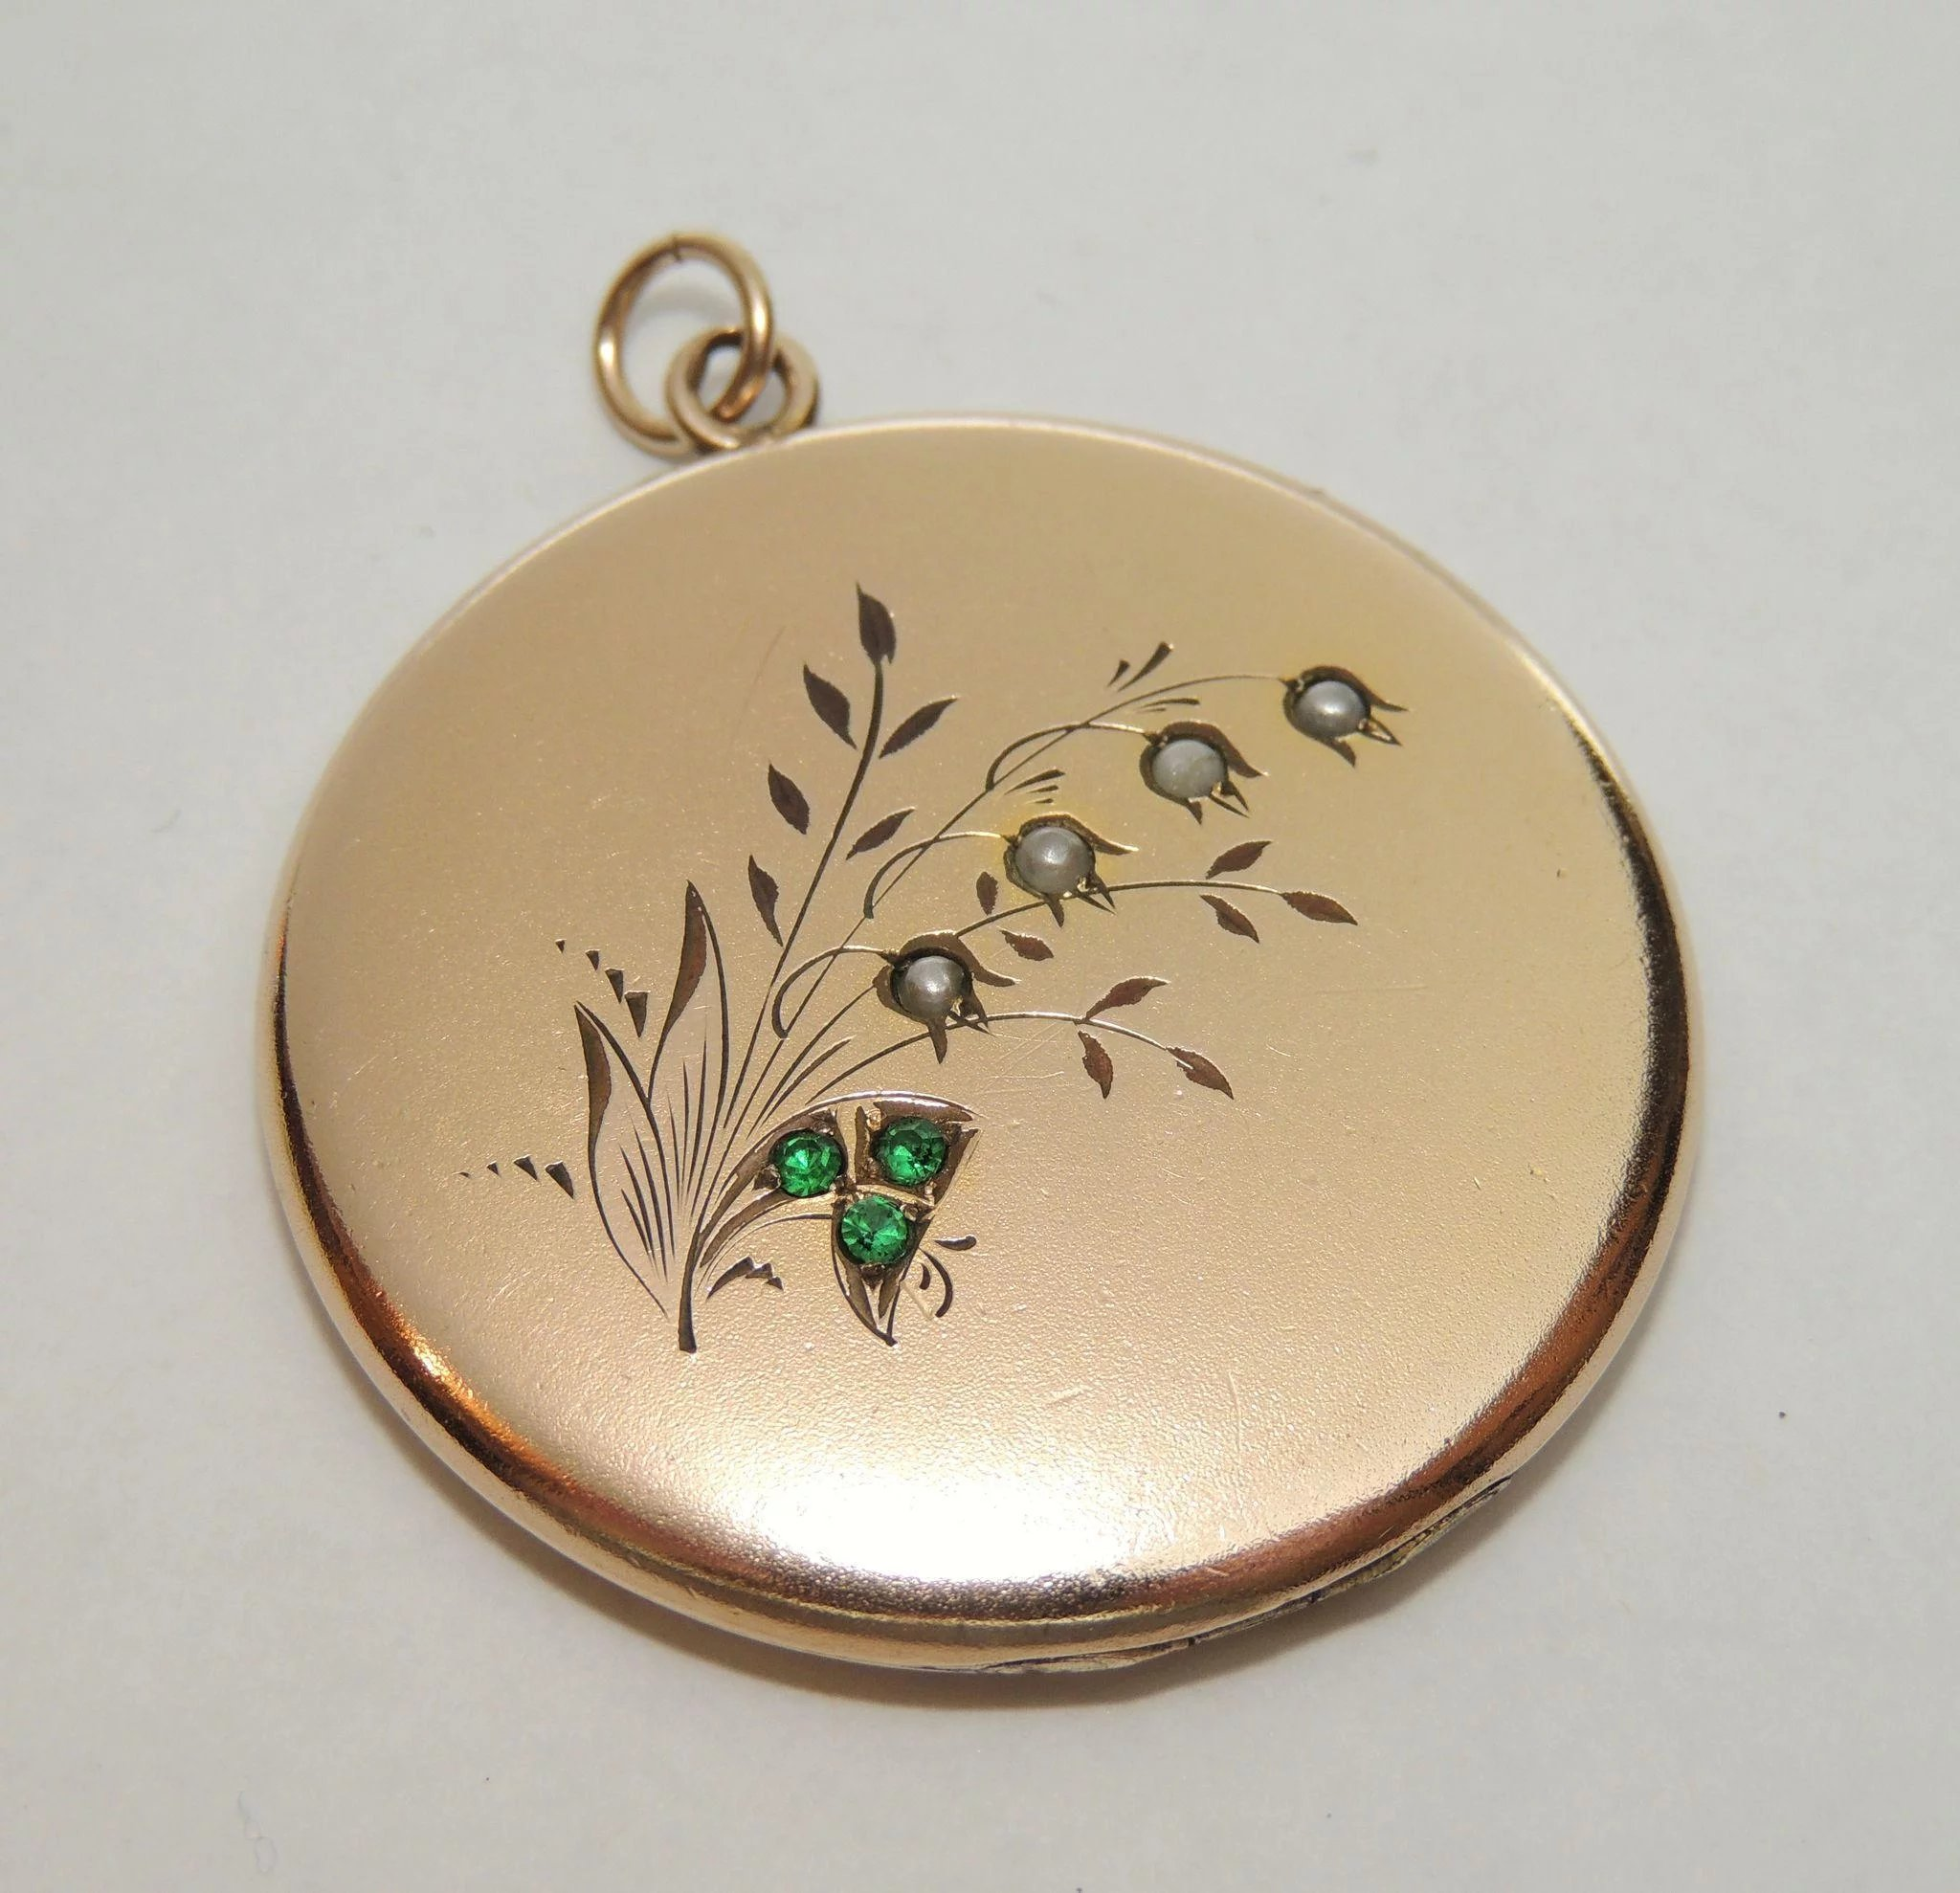 of mother day sun s hires gb pendant links en locket london gold vermeil charm yellow photo